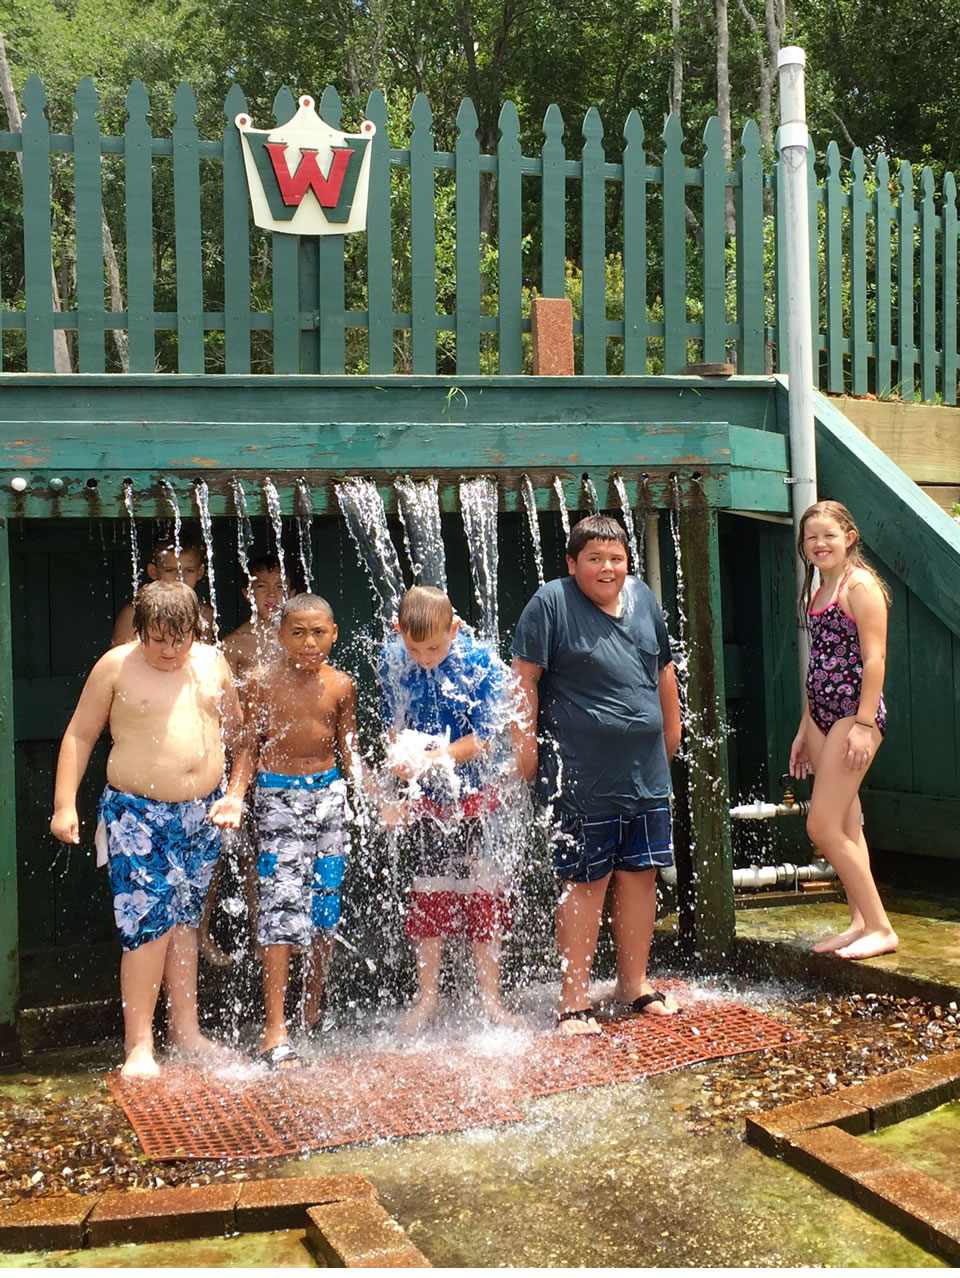 On a hot day, kids like to cool off at The Waterfall